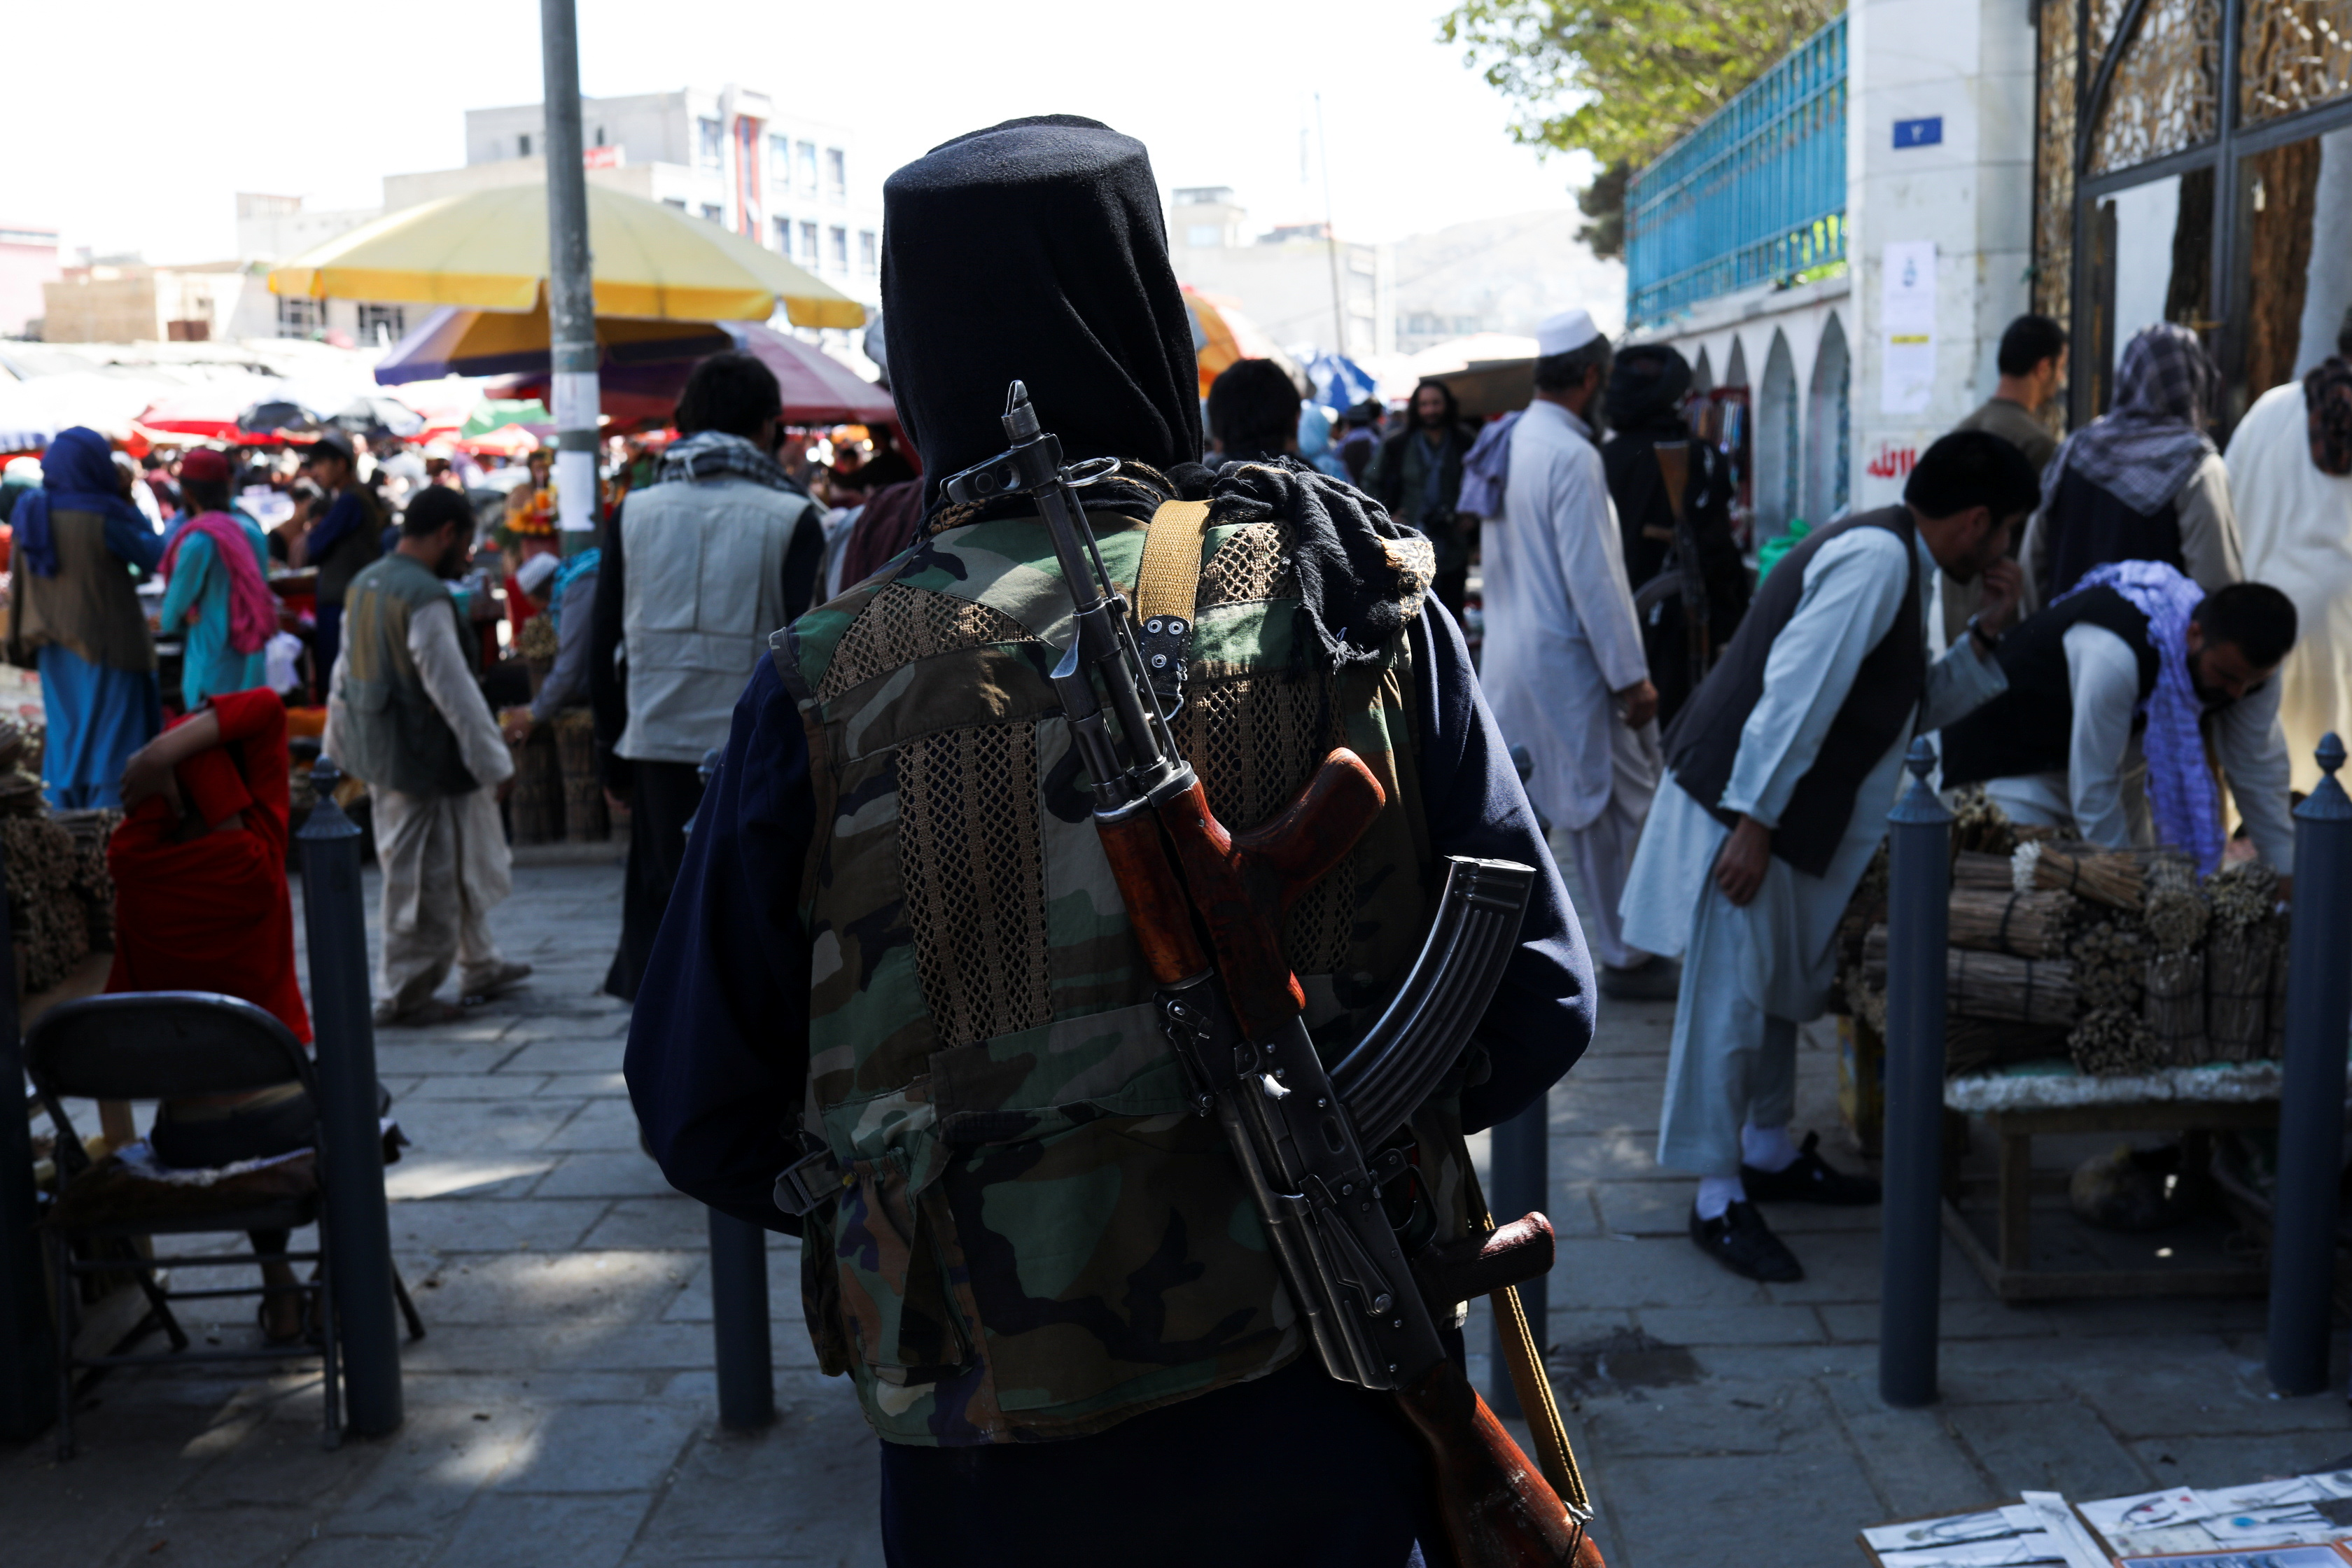 A Taliban soldier walks on a street in Kabul, Afghanistan, September 17, 2021. WANA (West Asia News Agency) via REUTERS